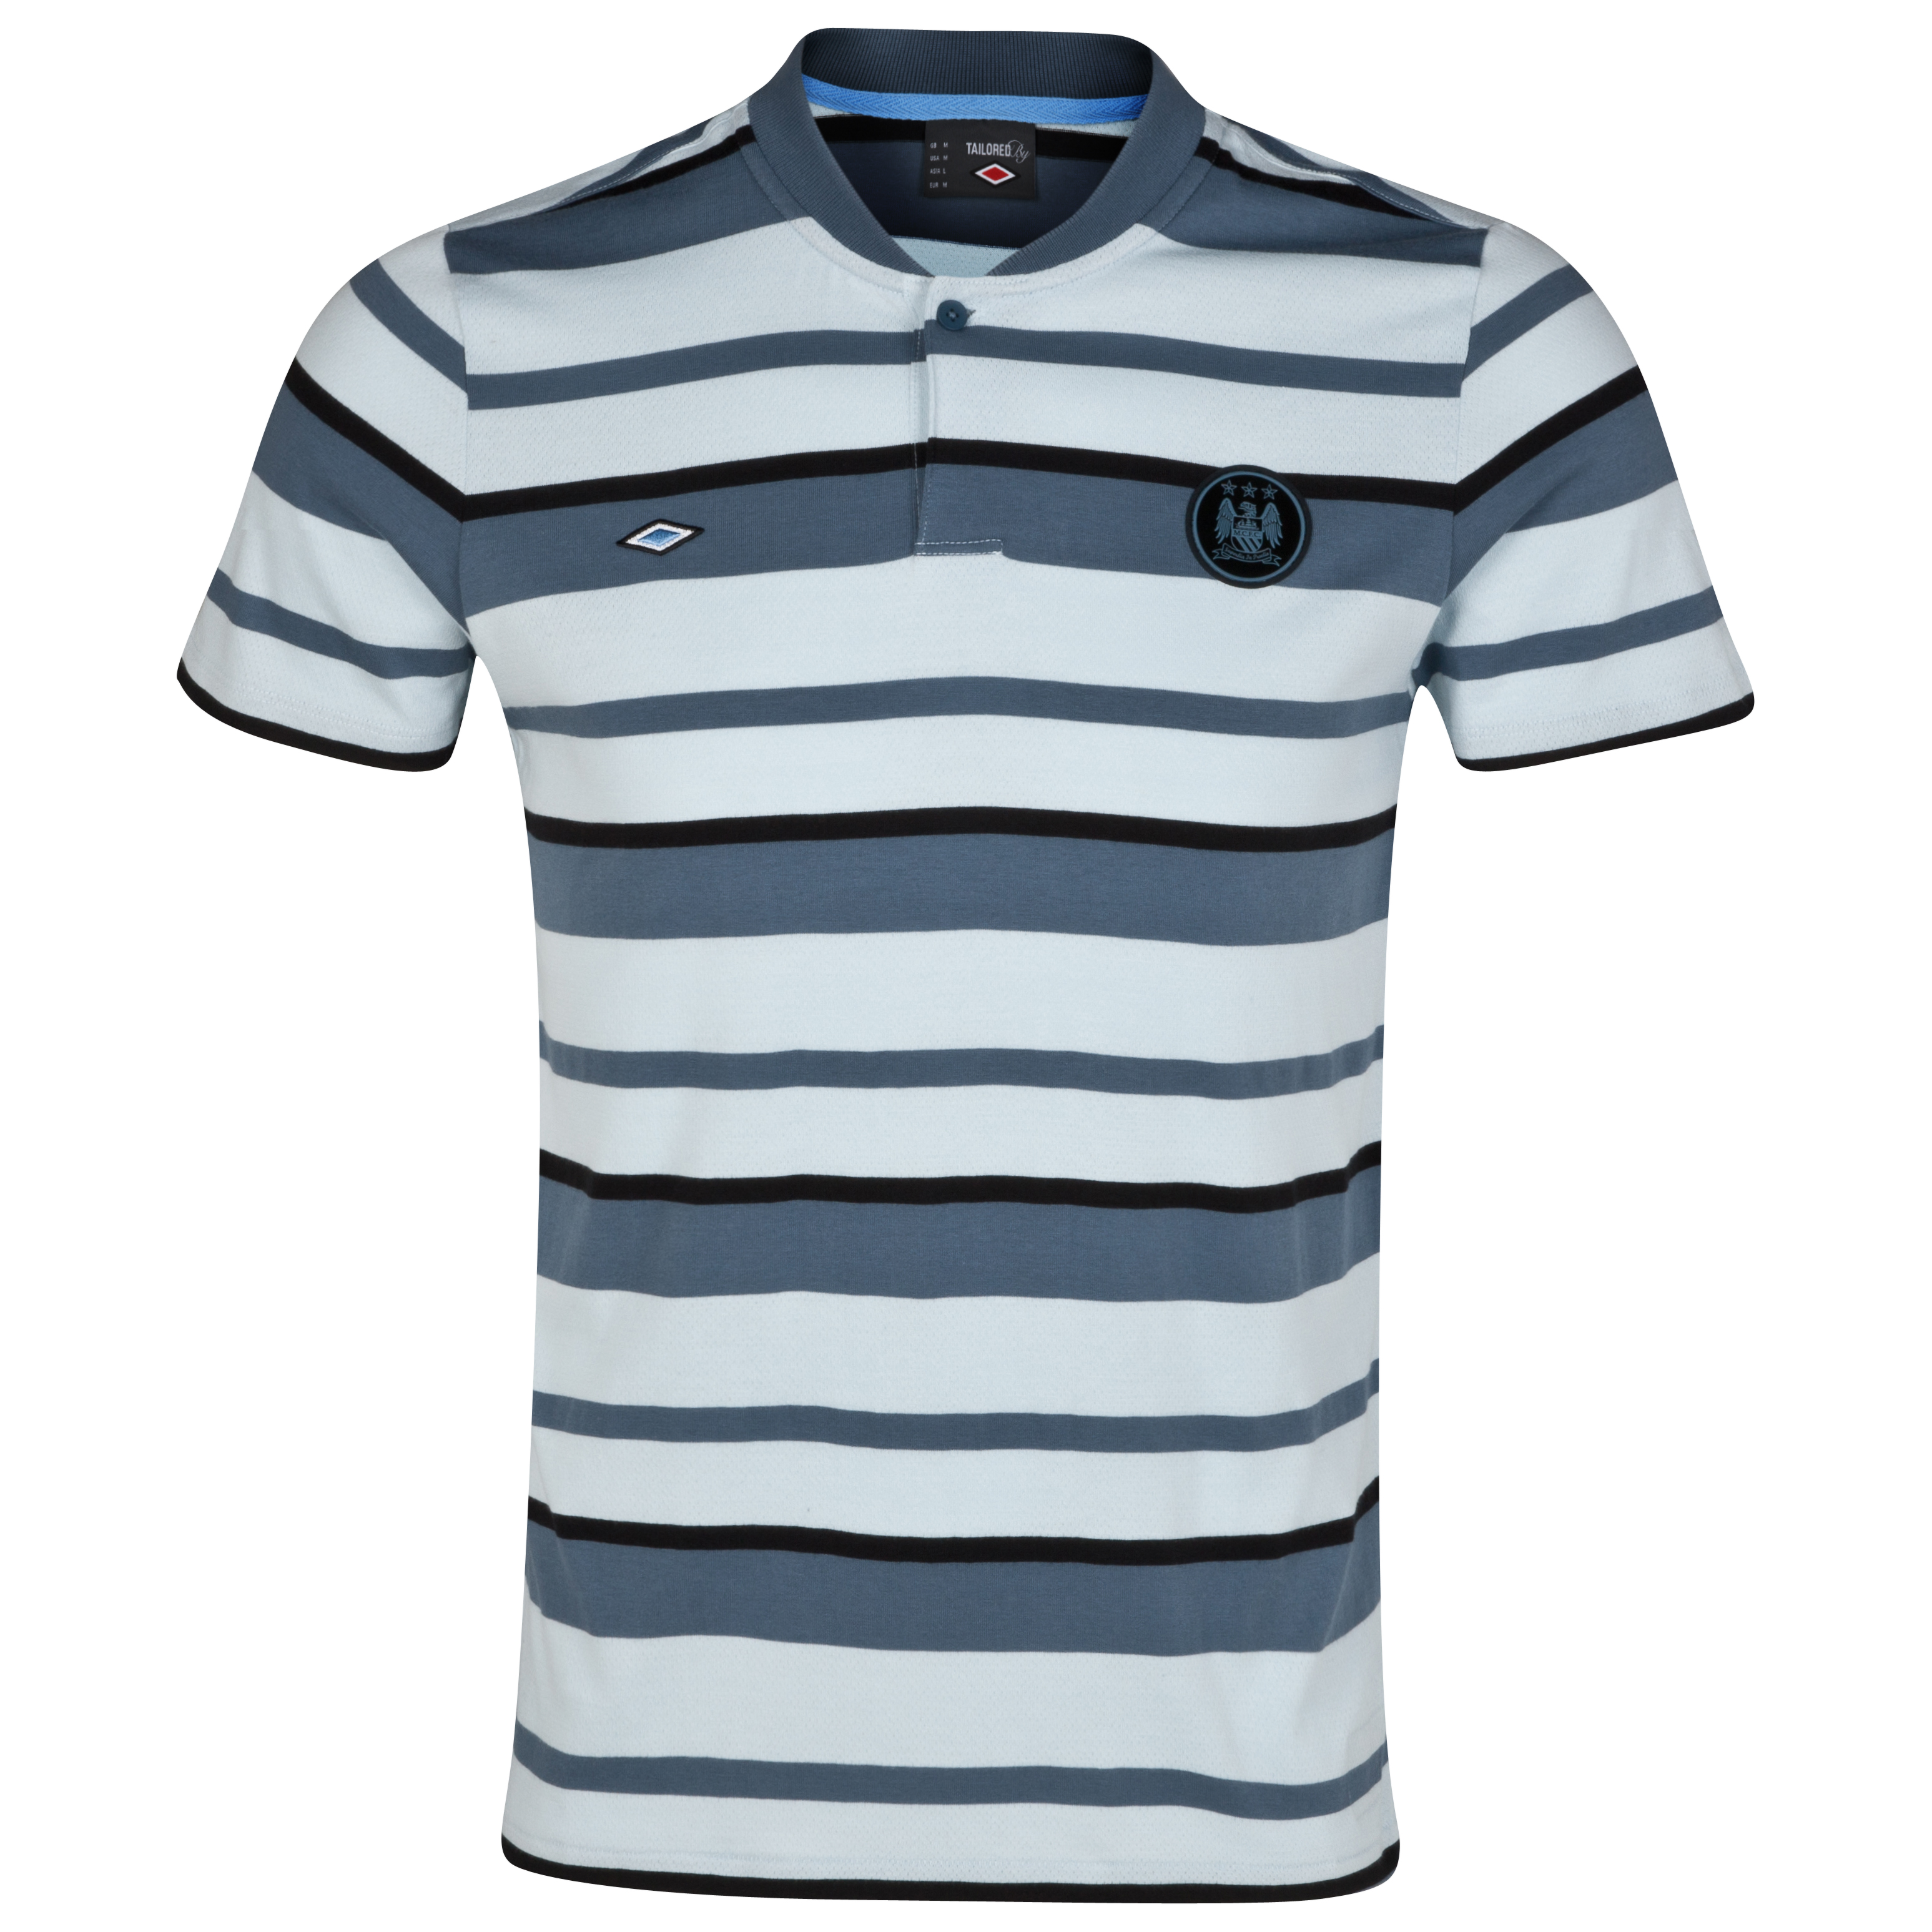 Manchester City Yarn Dye Stripe Polo - Baby Blue/China Blue/Black